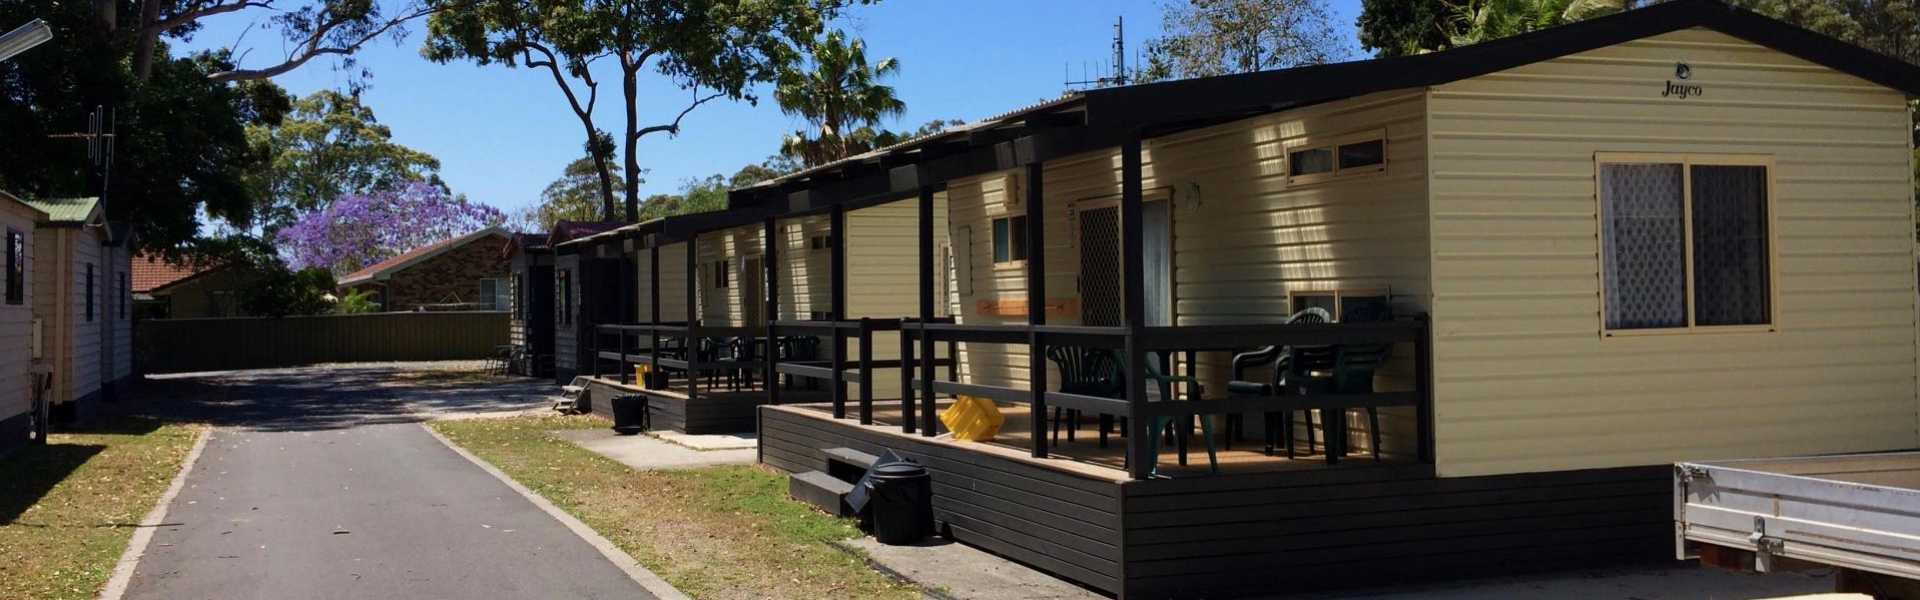 Kui Parks, Twin Dolphins Holiday Park, Tuncurry, Cabins